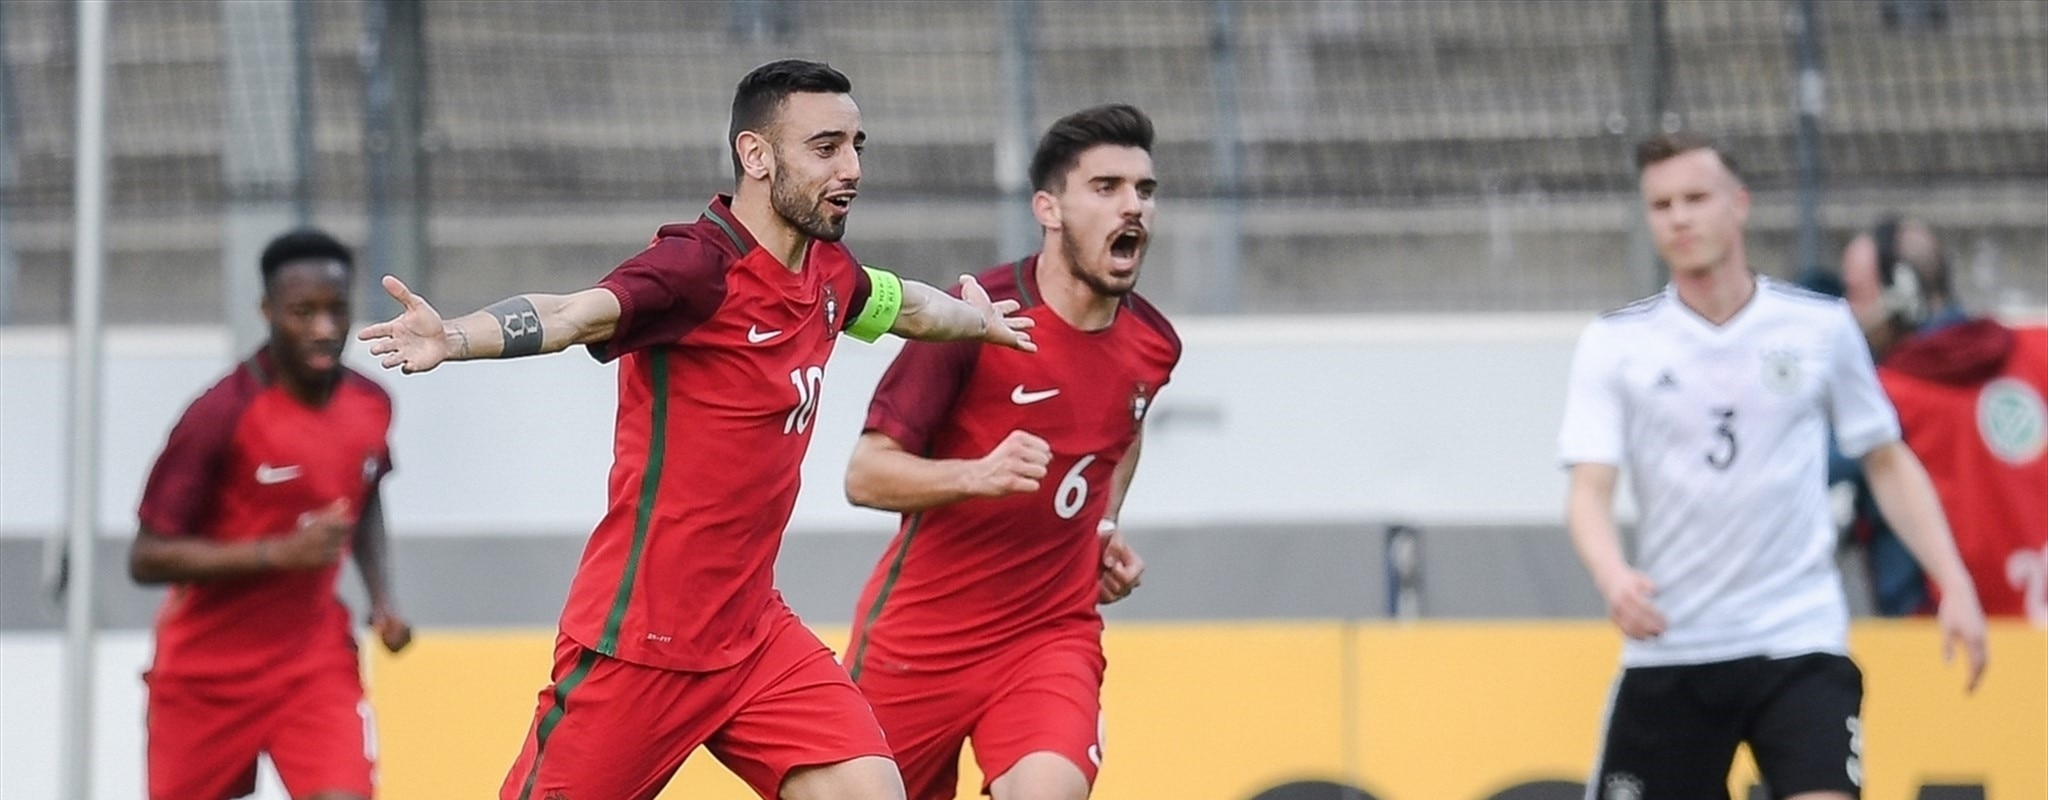 U21 EURO finalists' friendly results: Portugal beat Germany